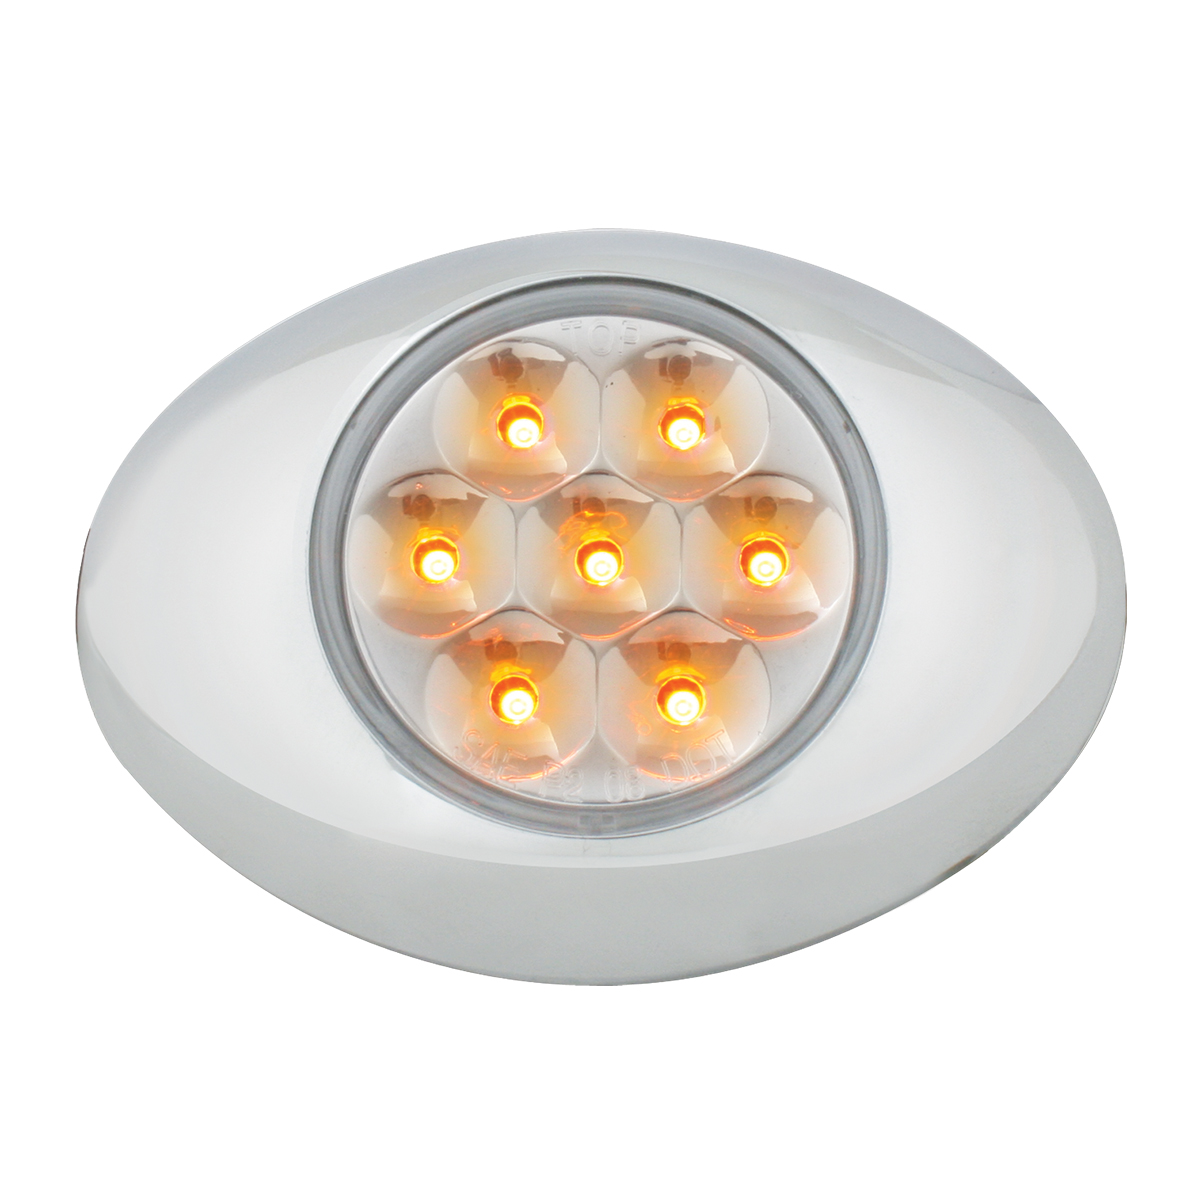 Small Pearl LED Light in Amber/Clear with Chrome Bezel